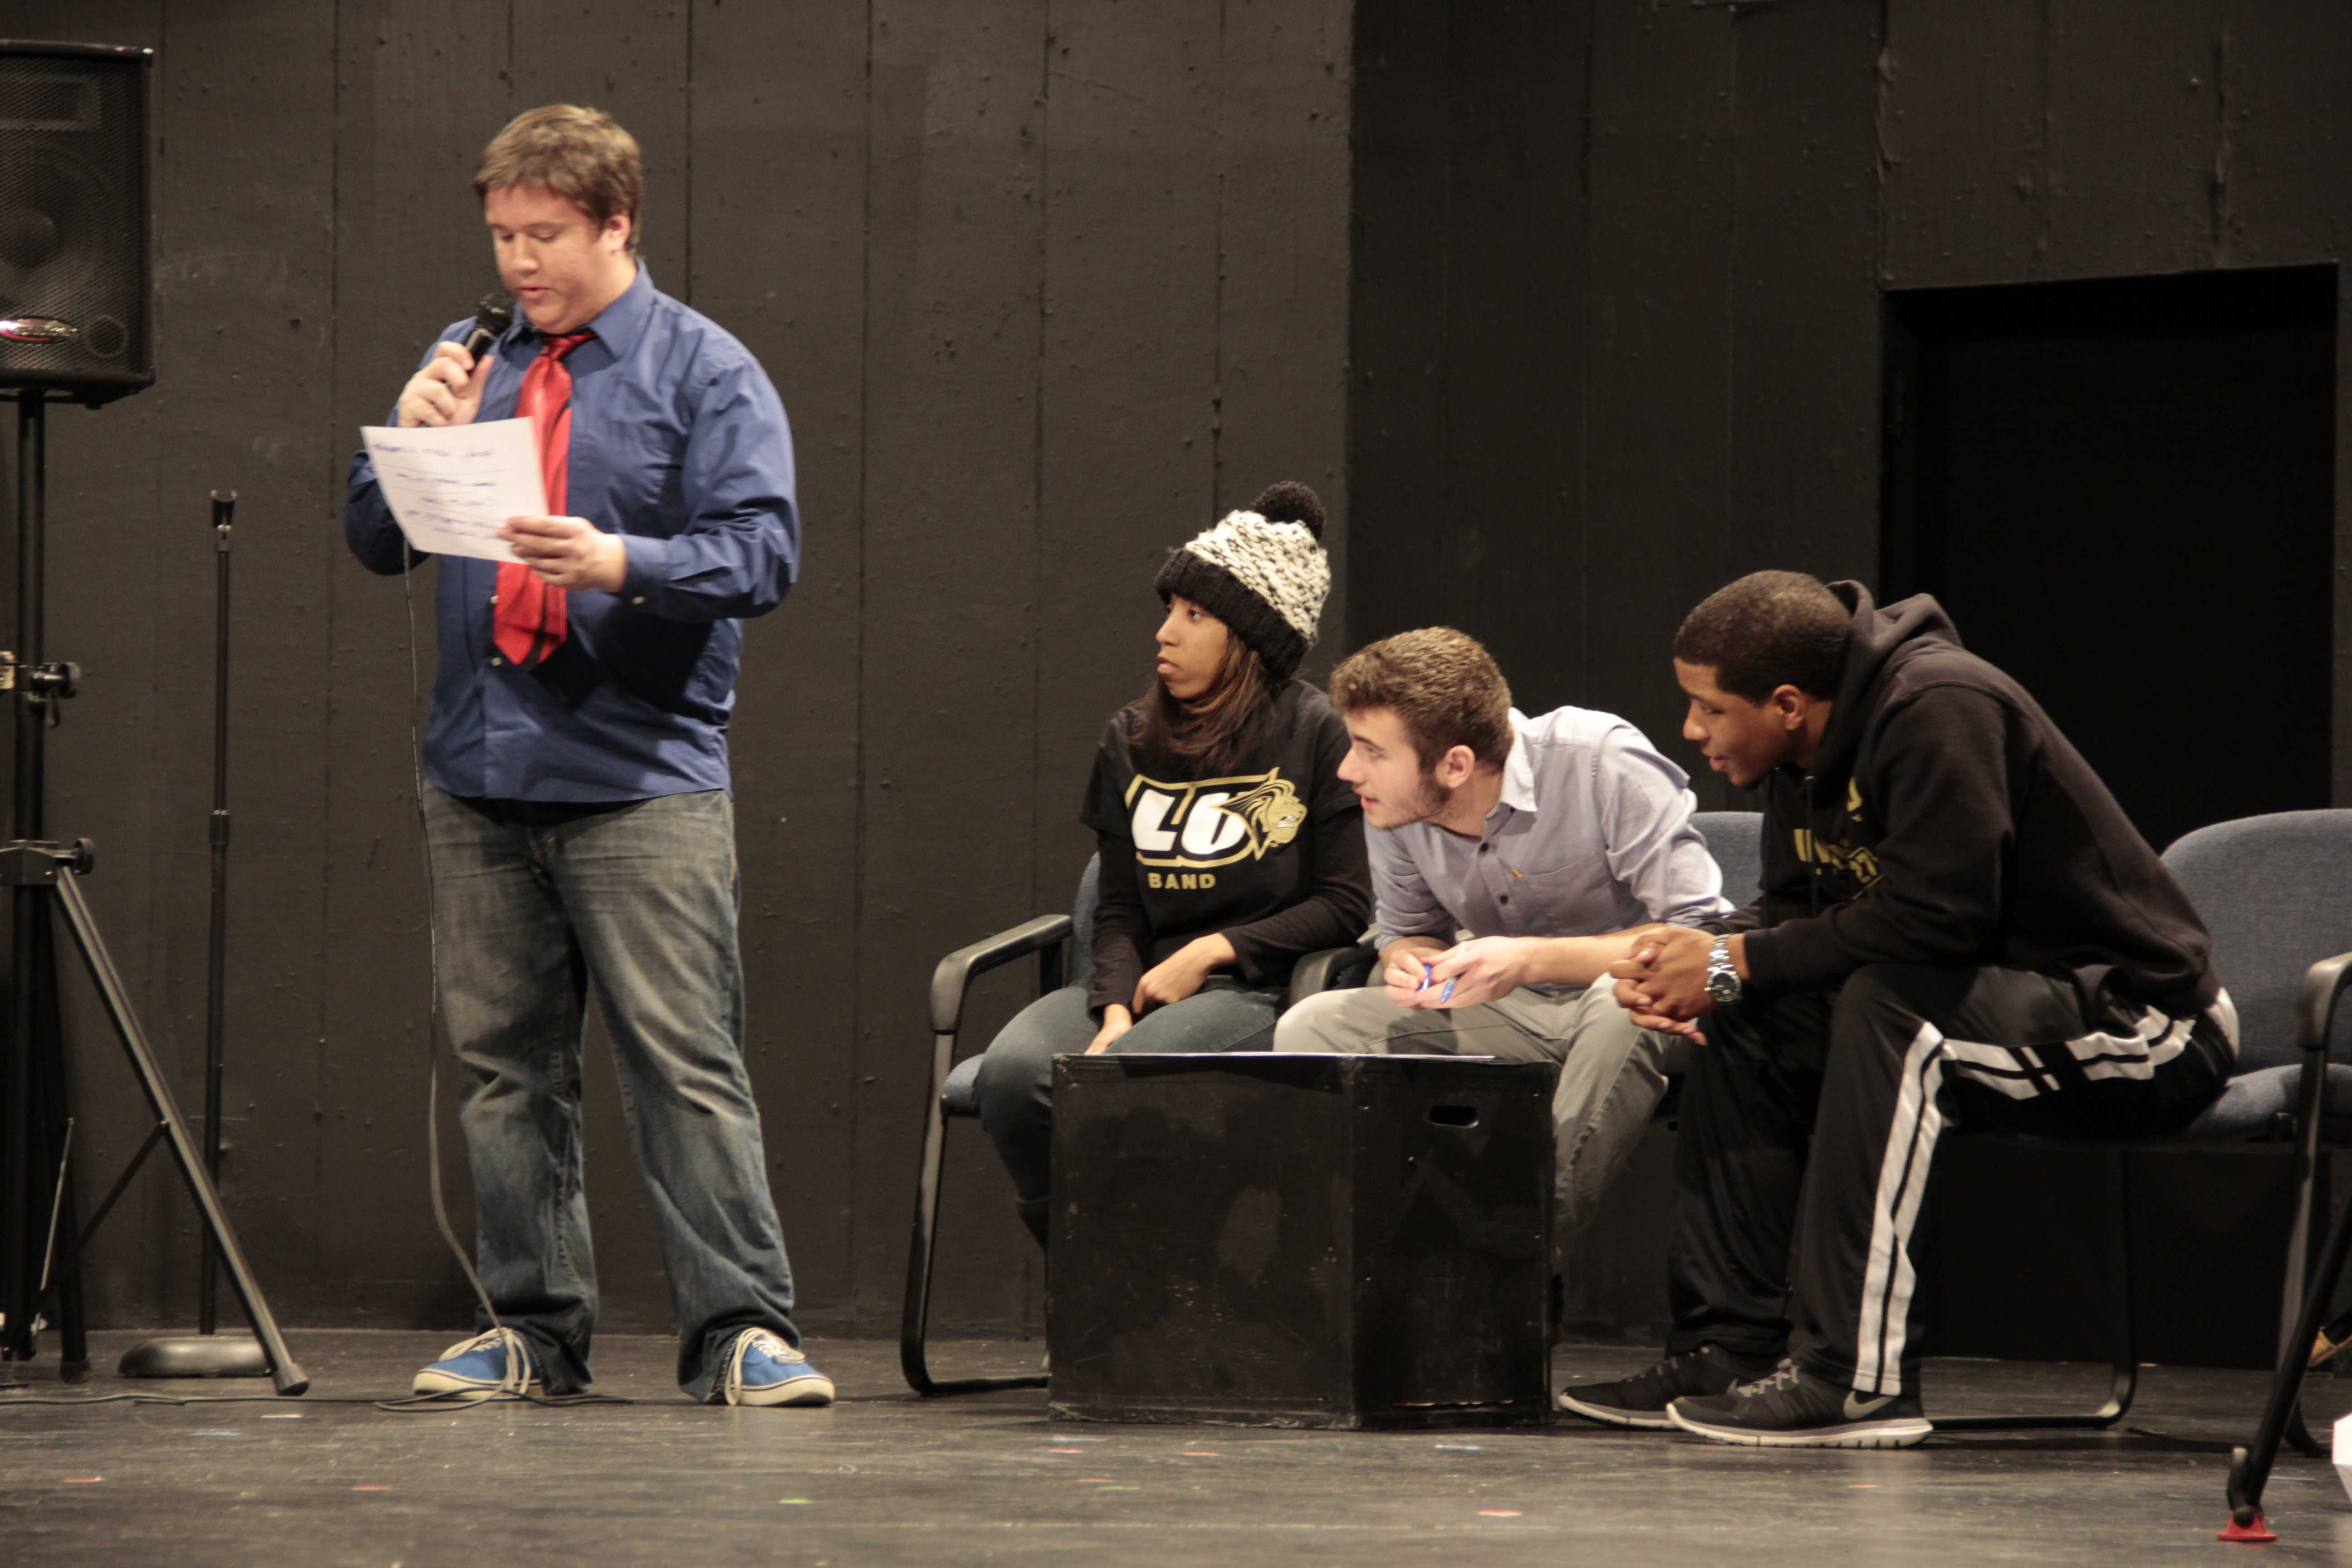 photo by Essi Virtanen Fritz pulls of a successful  hosting gig at Phi Mu Alpha's game show event